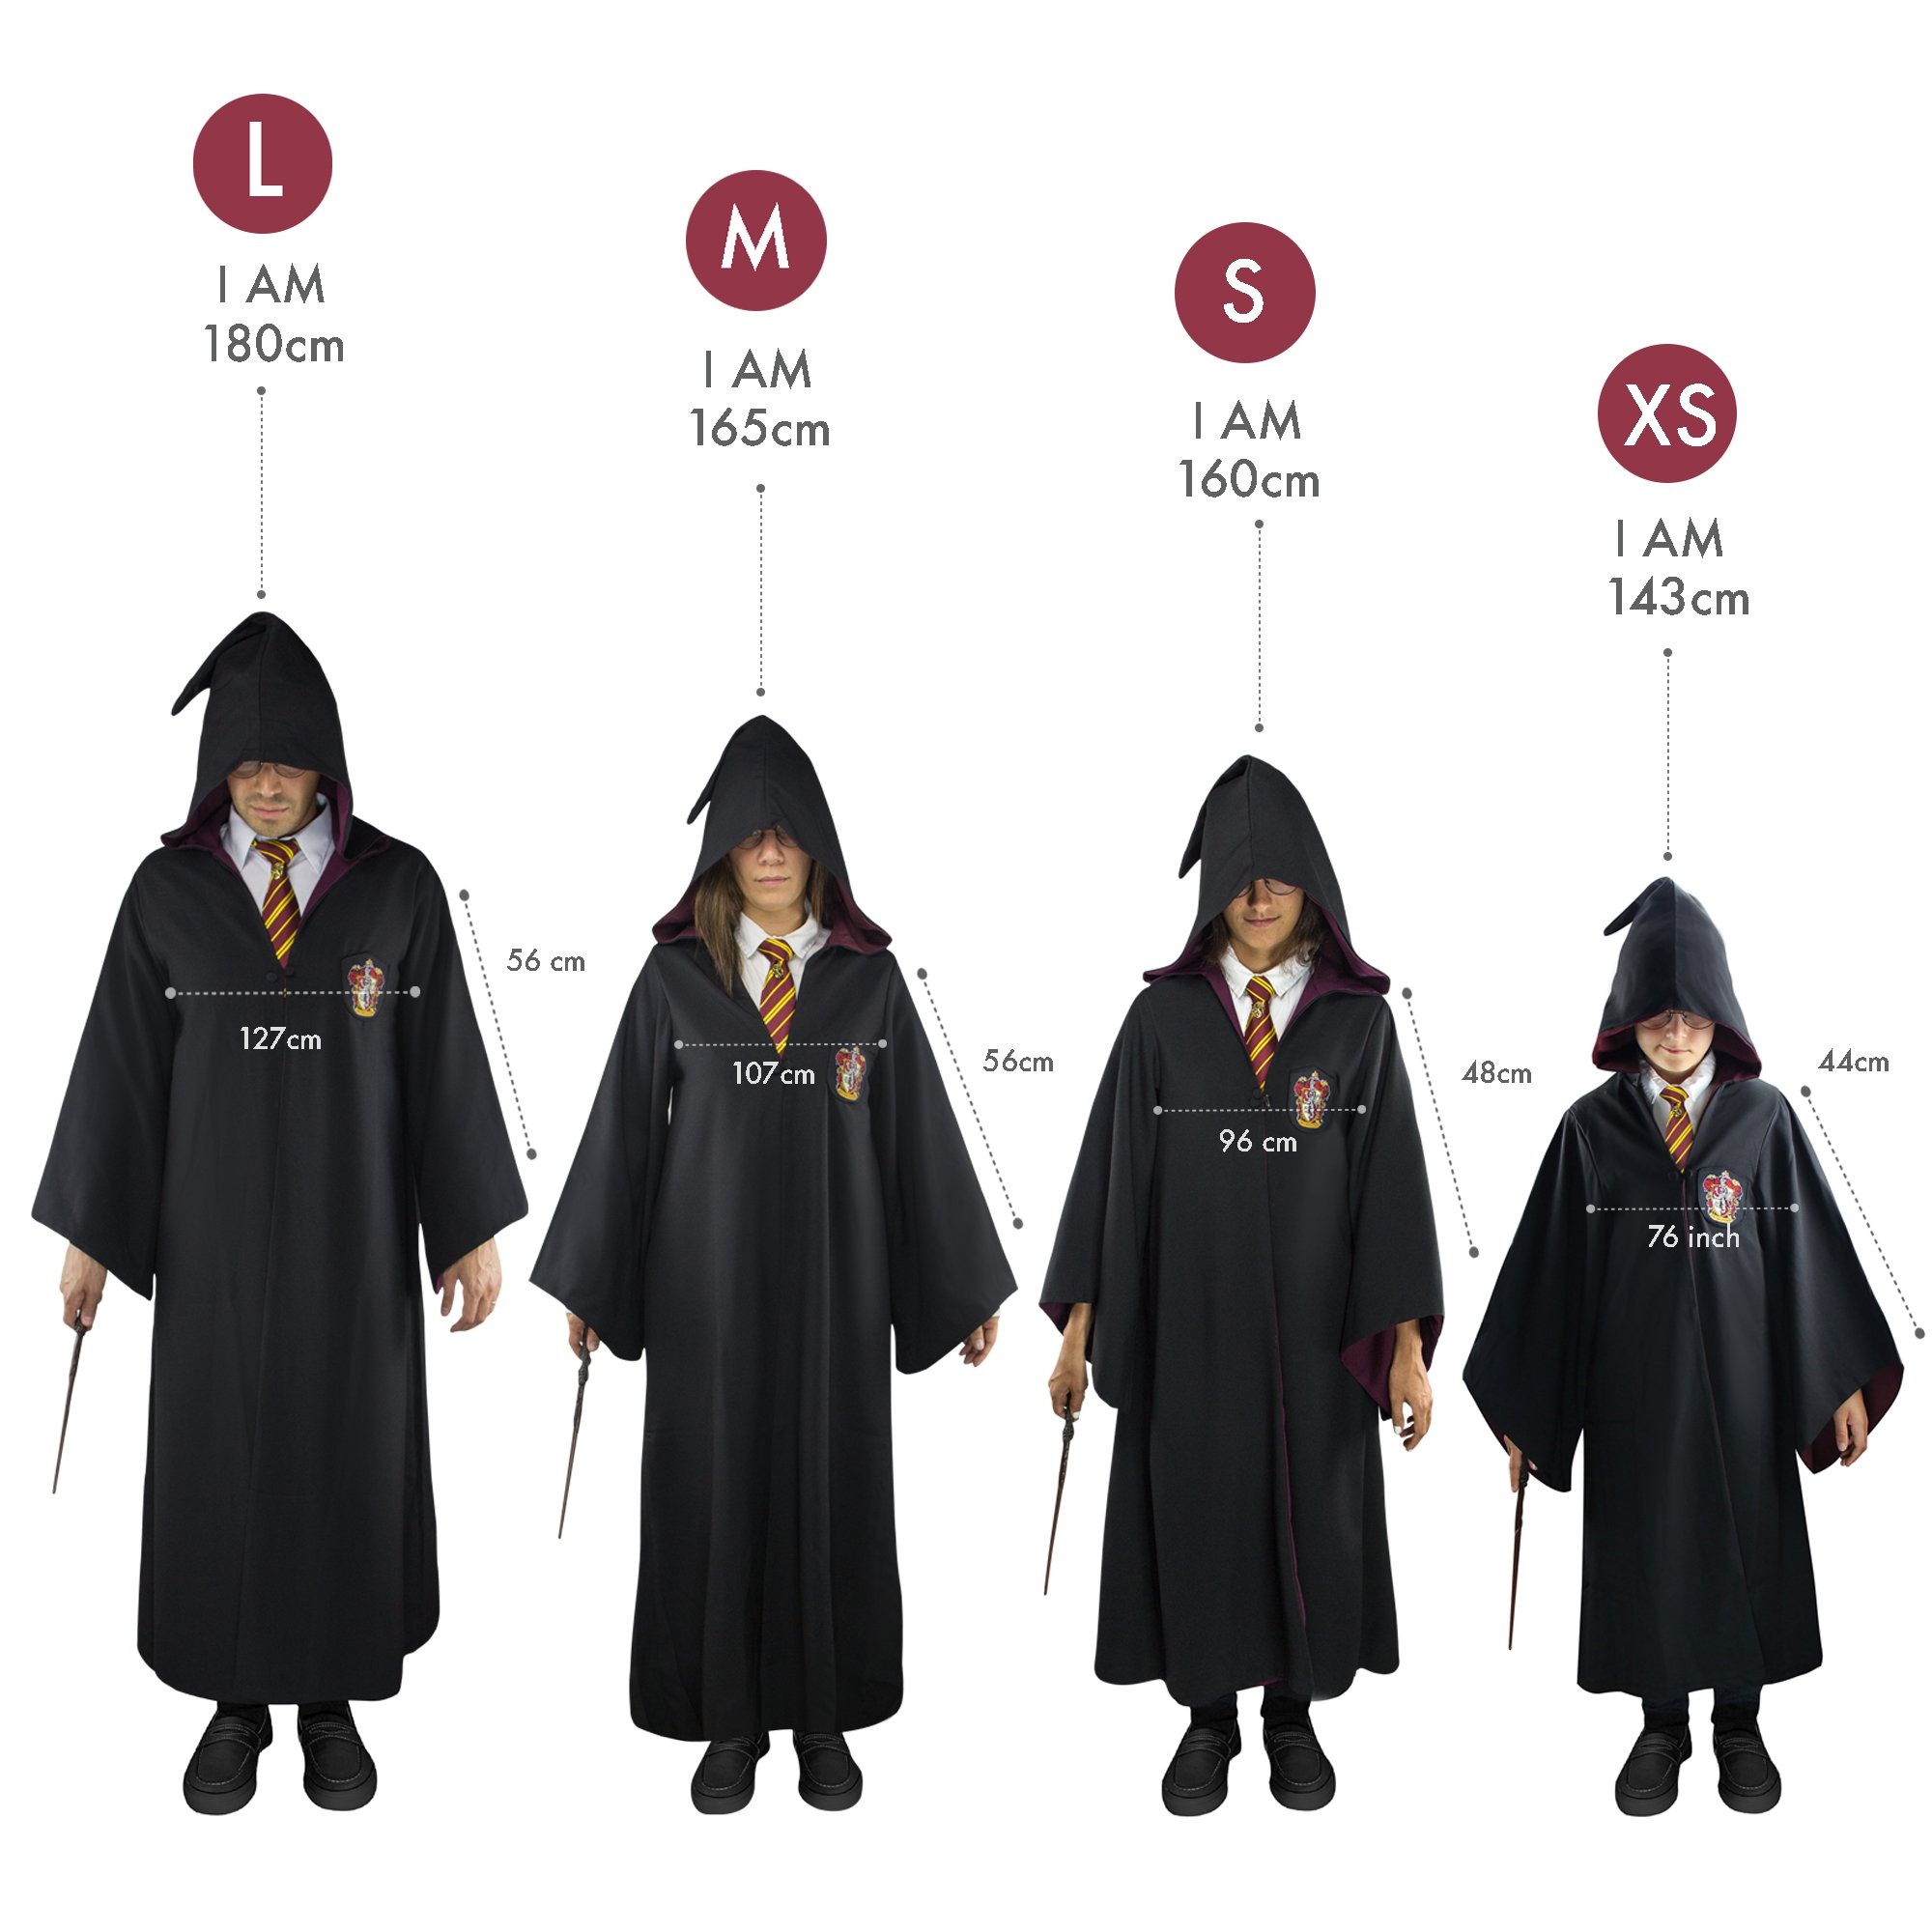 Harry Potter Authentic Tailored Wizard Robes Cloak by Cinereplicas by Cinereplicas (Image #7)